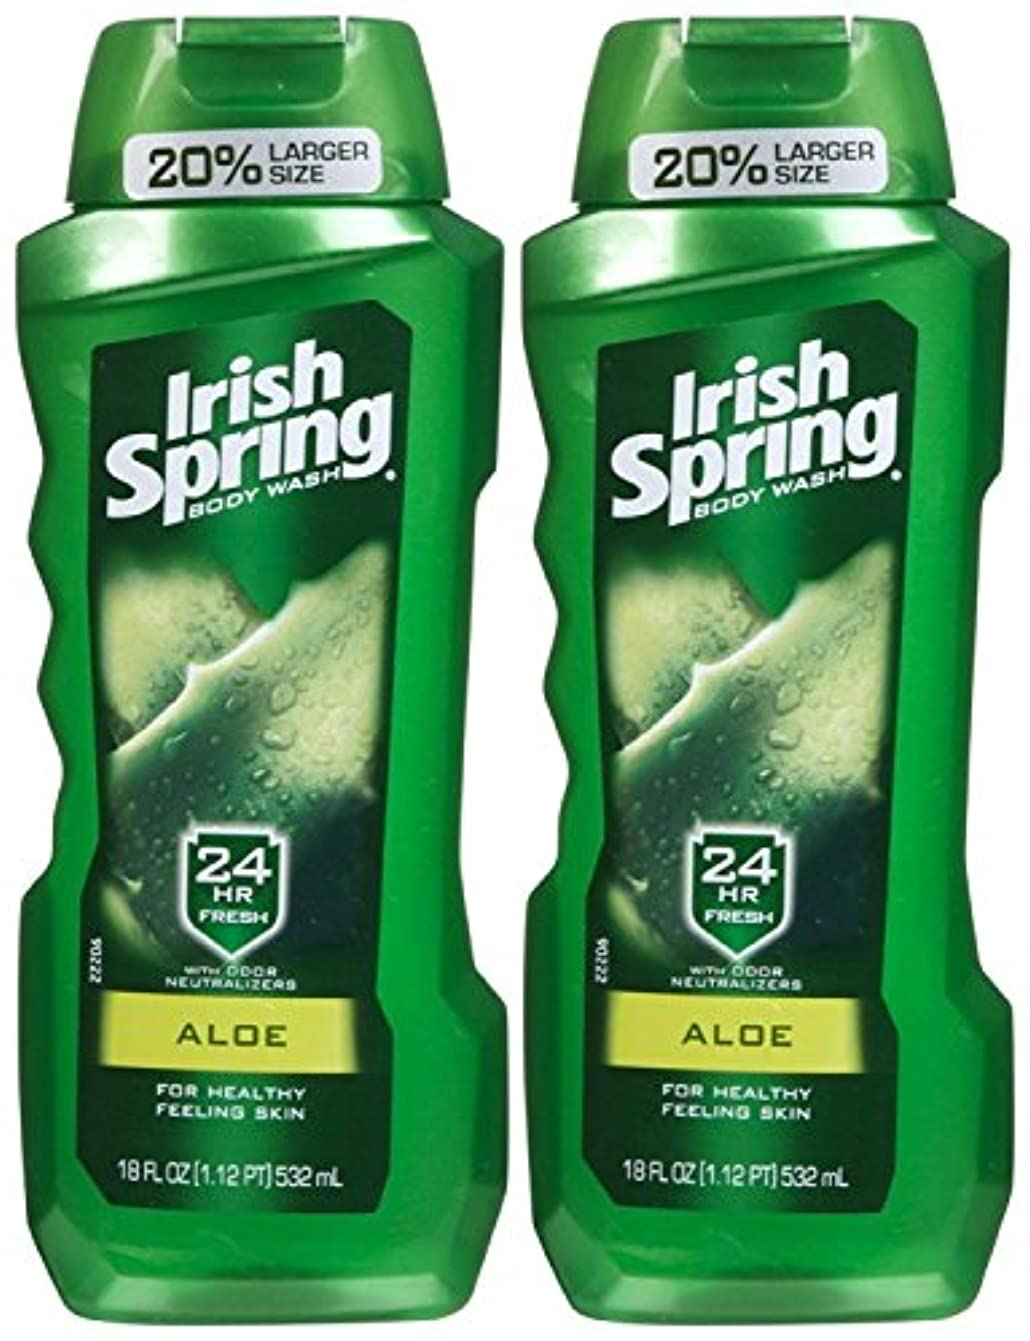 所持一流の間でIrish Spring Body Wash Aloe 24 Hr Fresh 18 Oz by Irish Spring